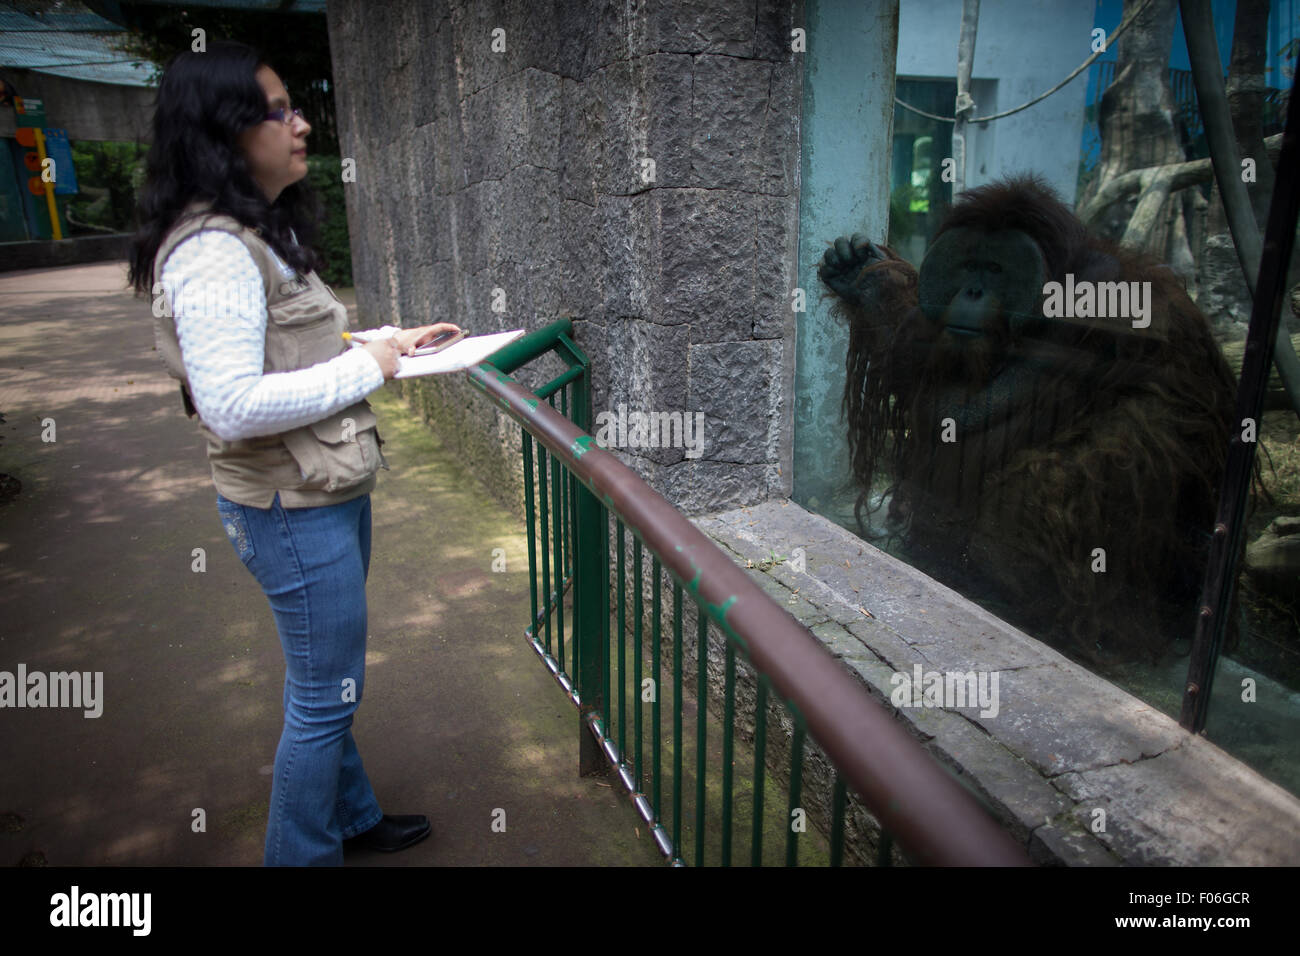 Mexico City. 3rd Aug, 2015. Image taken on Aug. 3, 2015 shows a Veterinarian watching the Orangutan 'Toto', - Stock Image